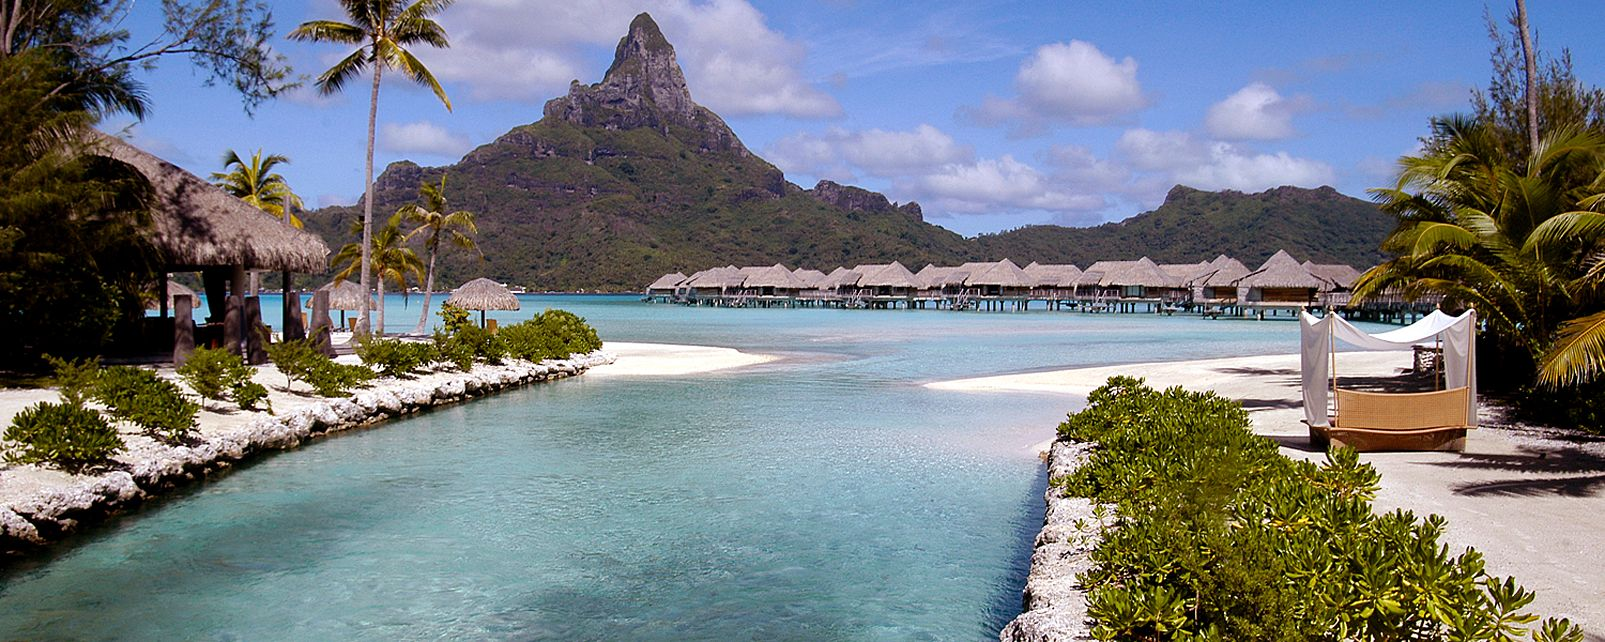 Hôtel Intercontinental Bora Bora Resort Thalasso and Spa